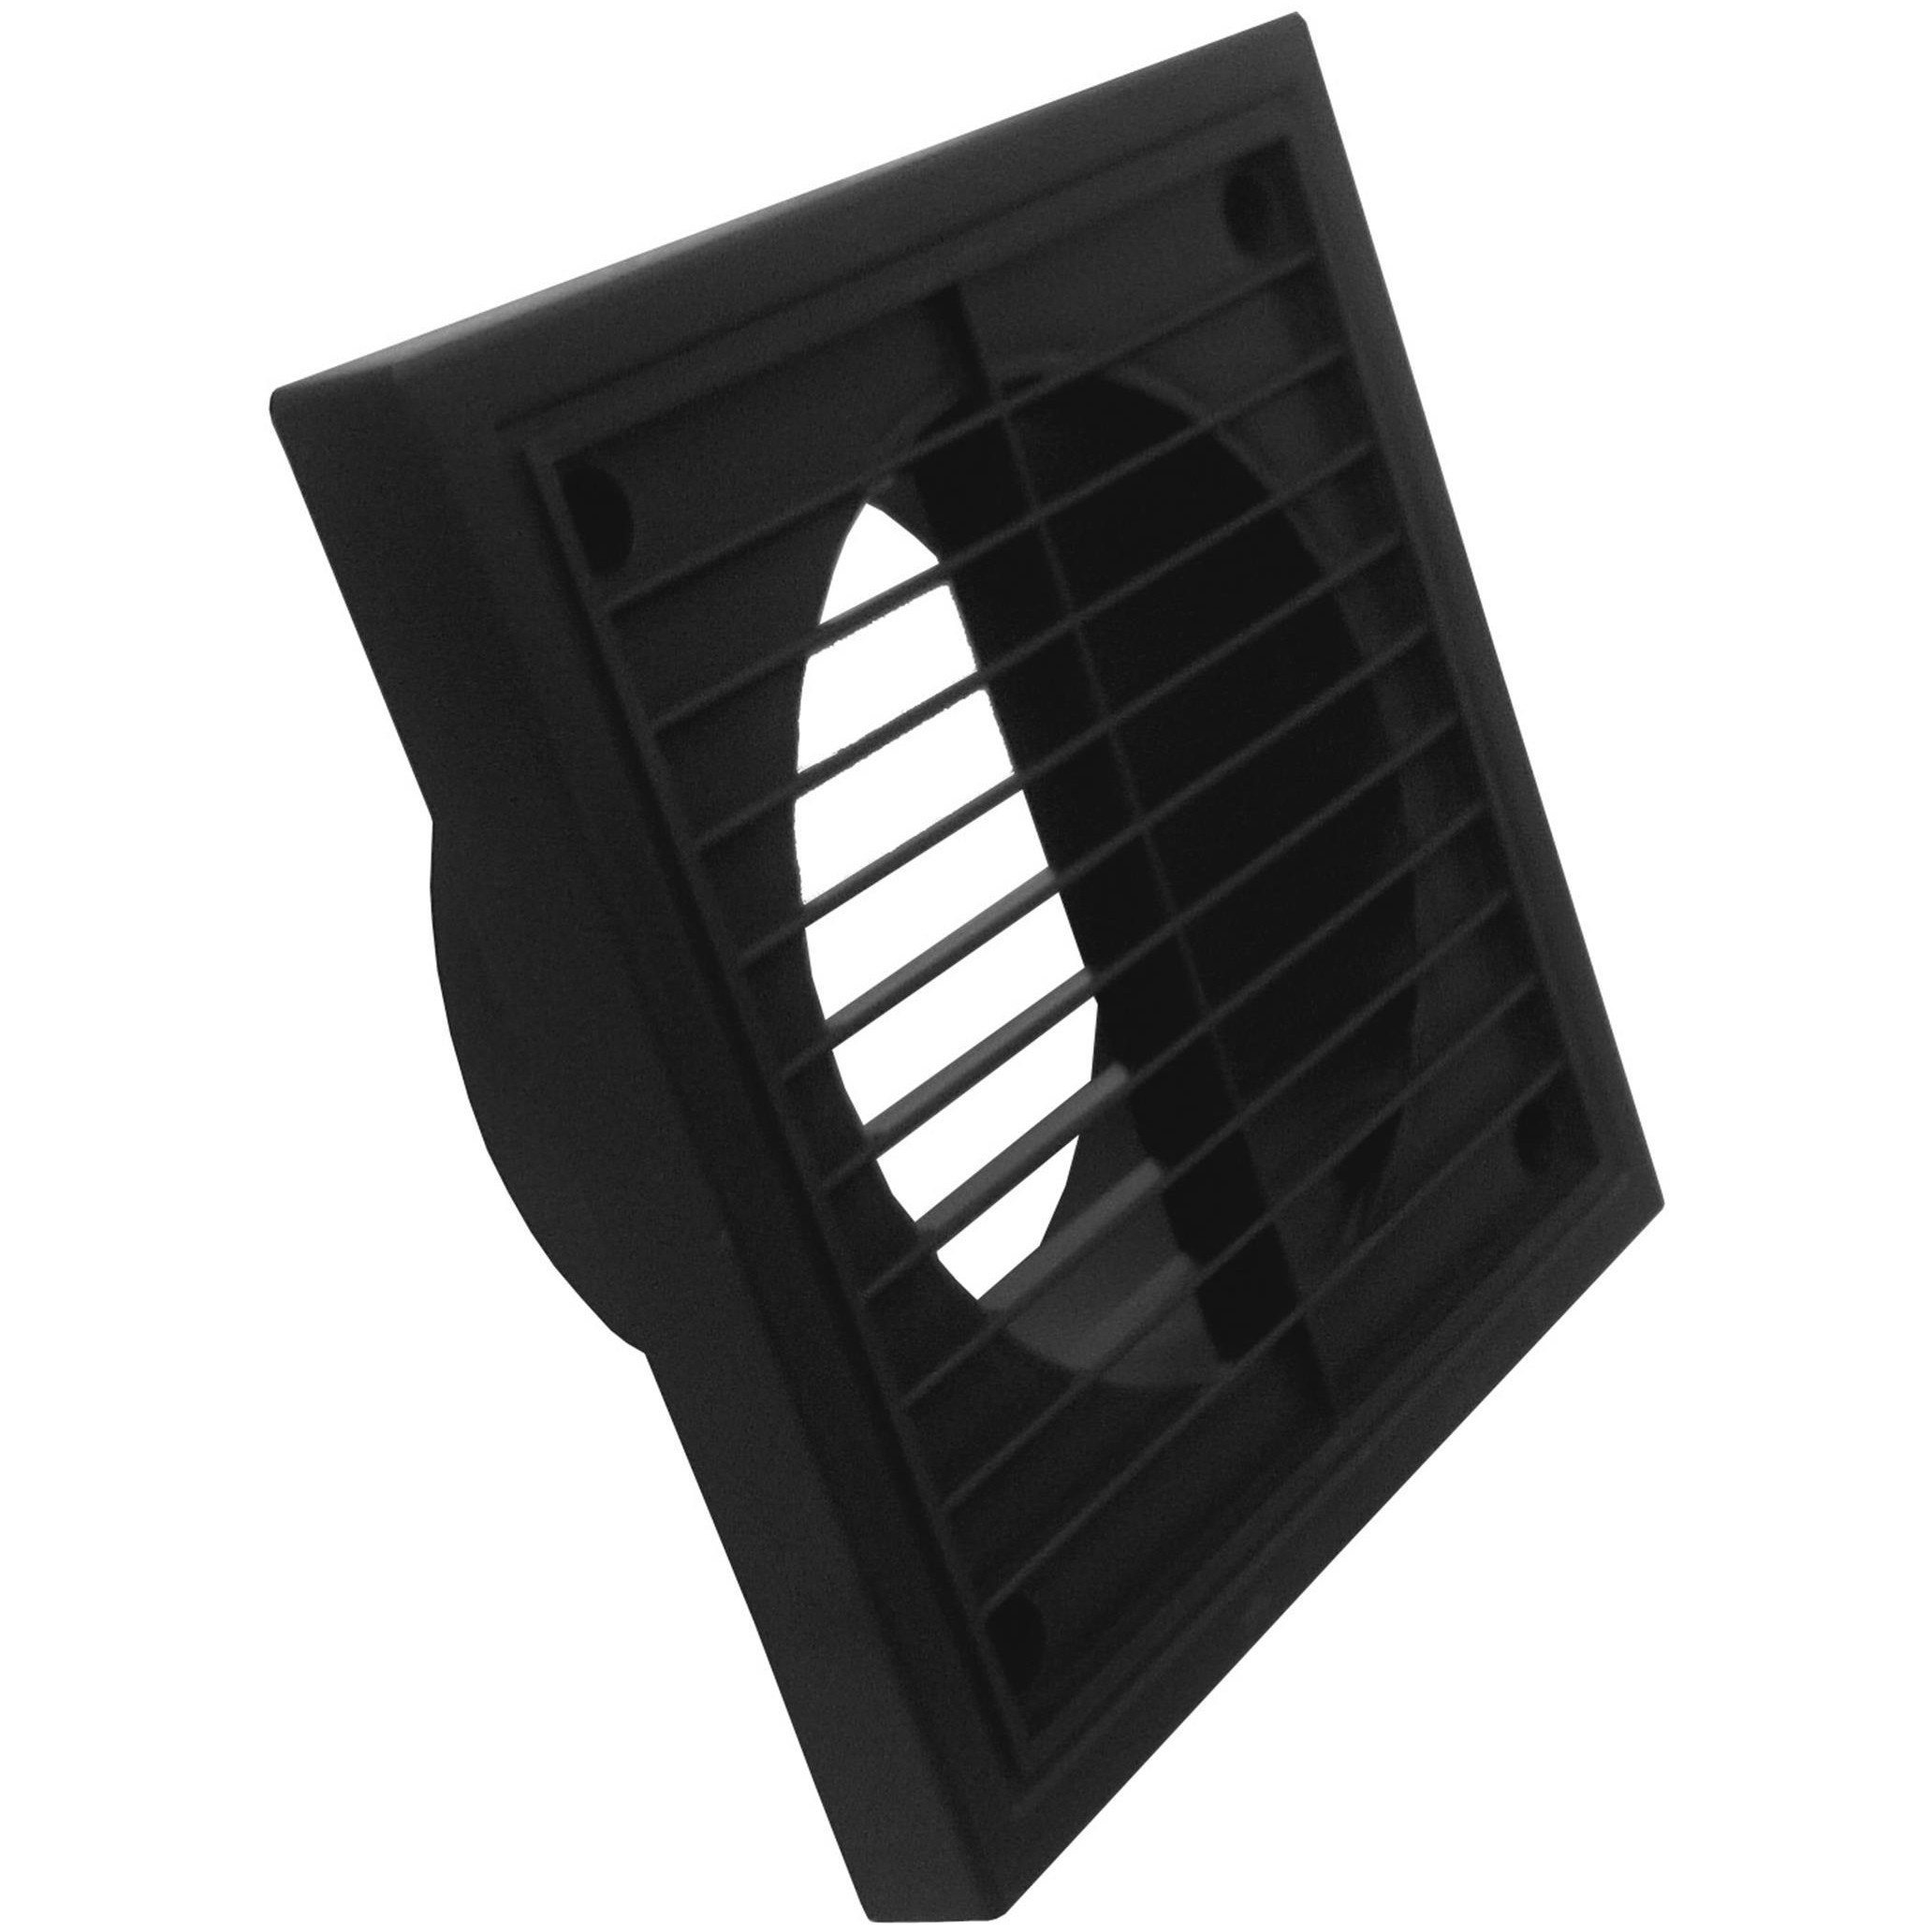 Manrose Round Ducting Pipe Fixed Grille Vent Outlet - Black, 125mm